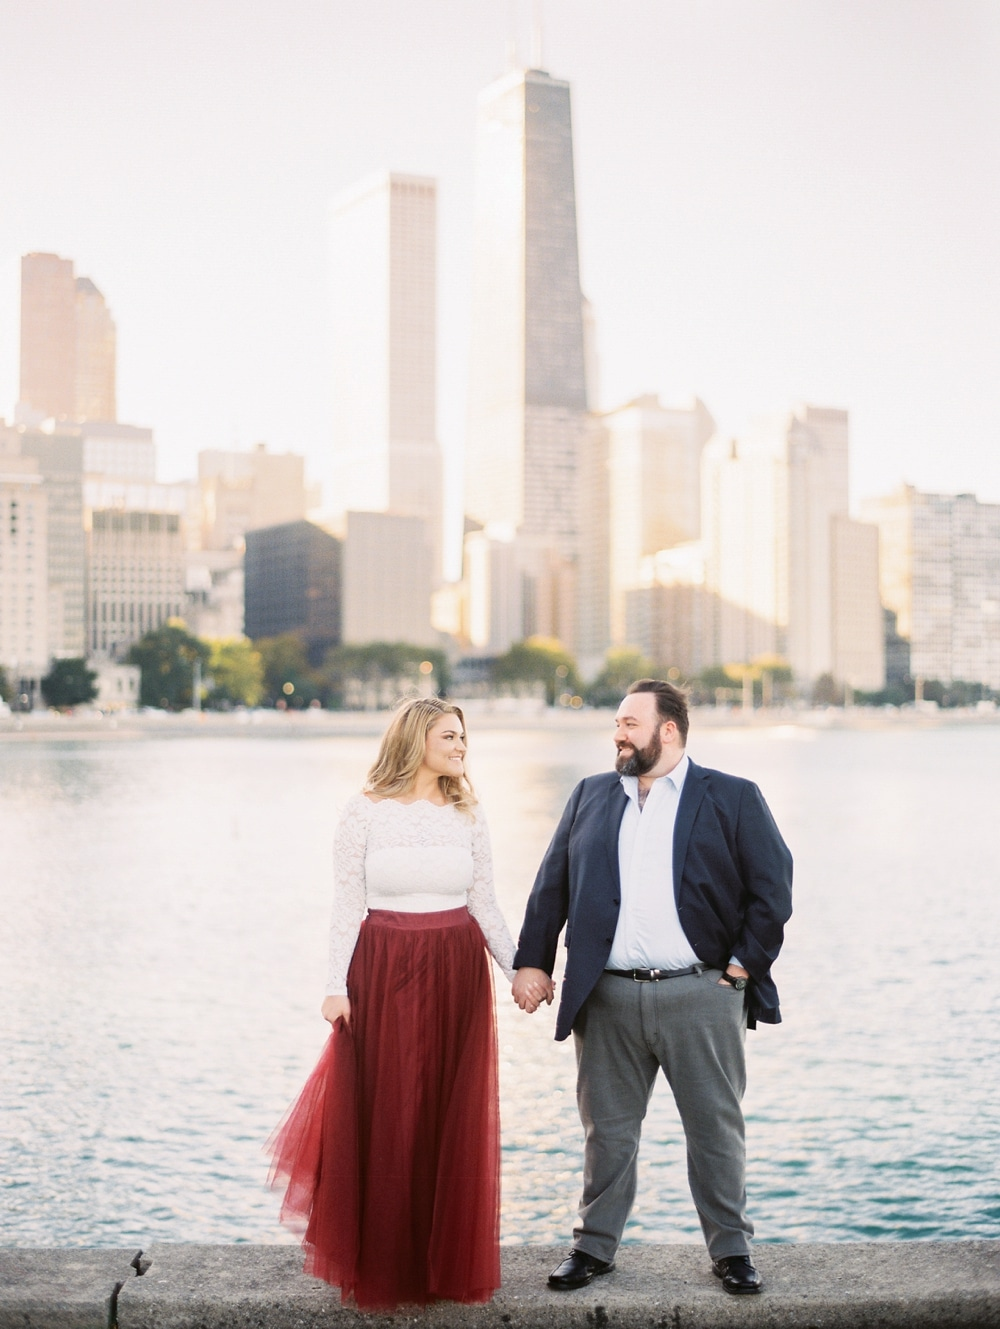 kristin-la-voie-photography-chicago-wedding-photographer-olive-park-55